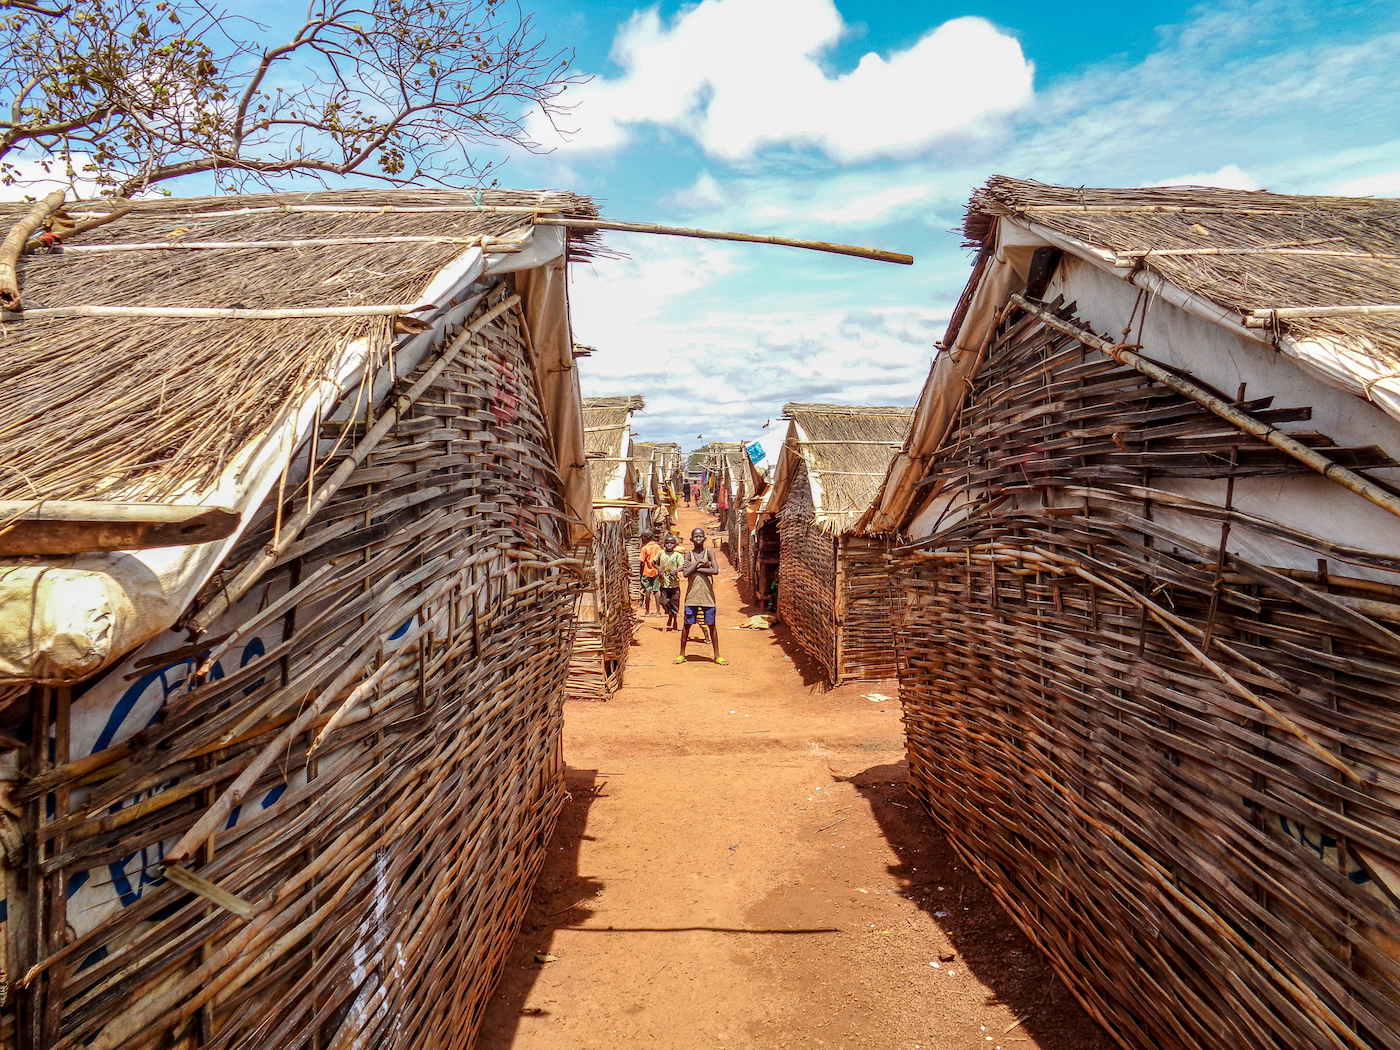 View of shelters in Wau Protection of Civilians site Adjacent Area, South Sudan, in 2018.